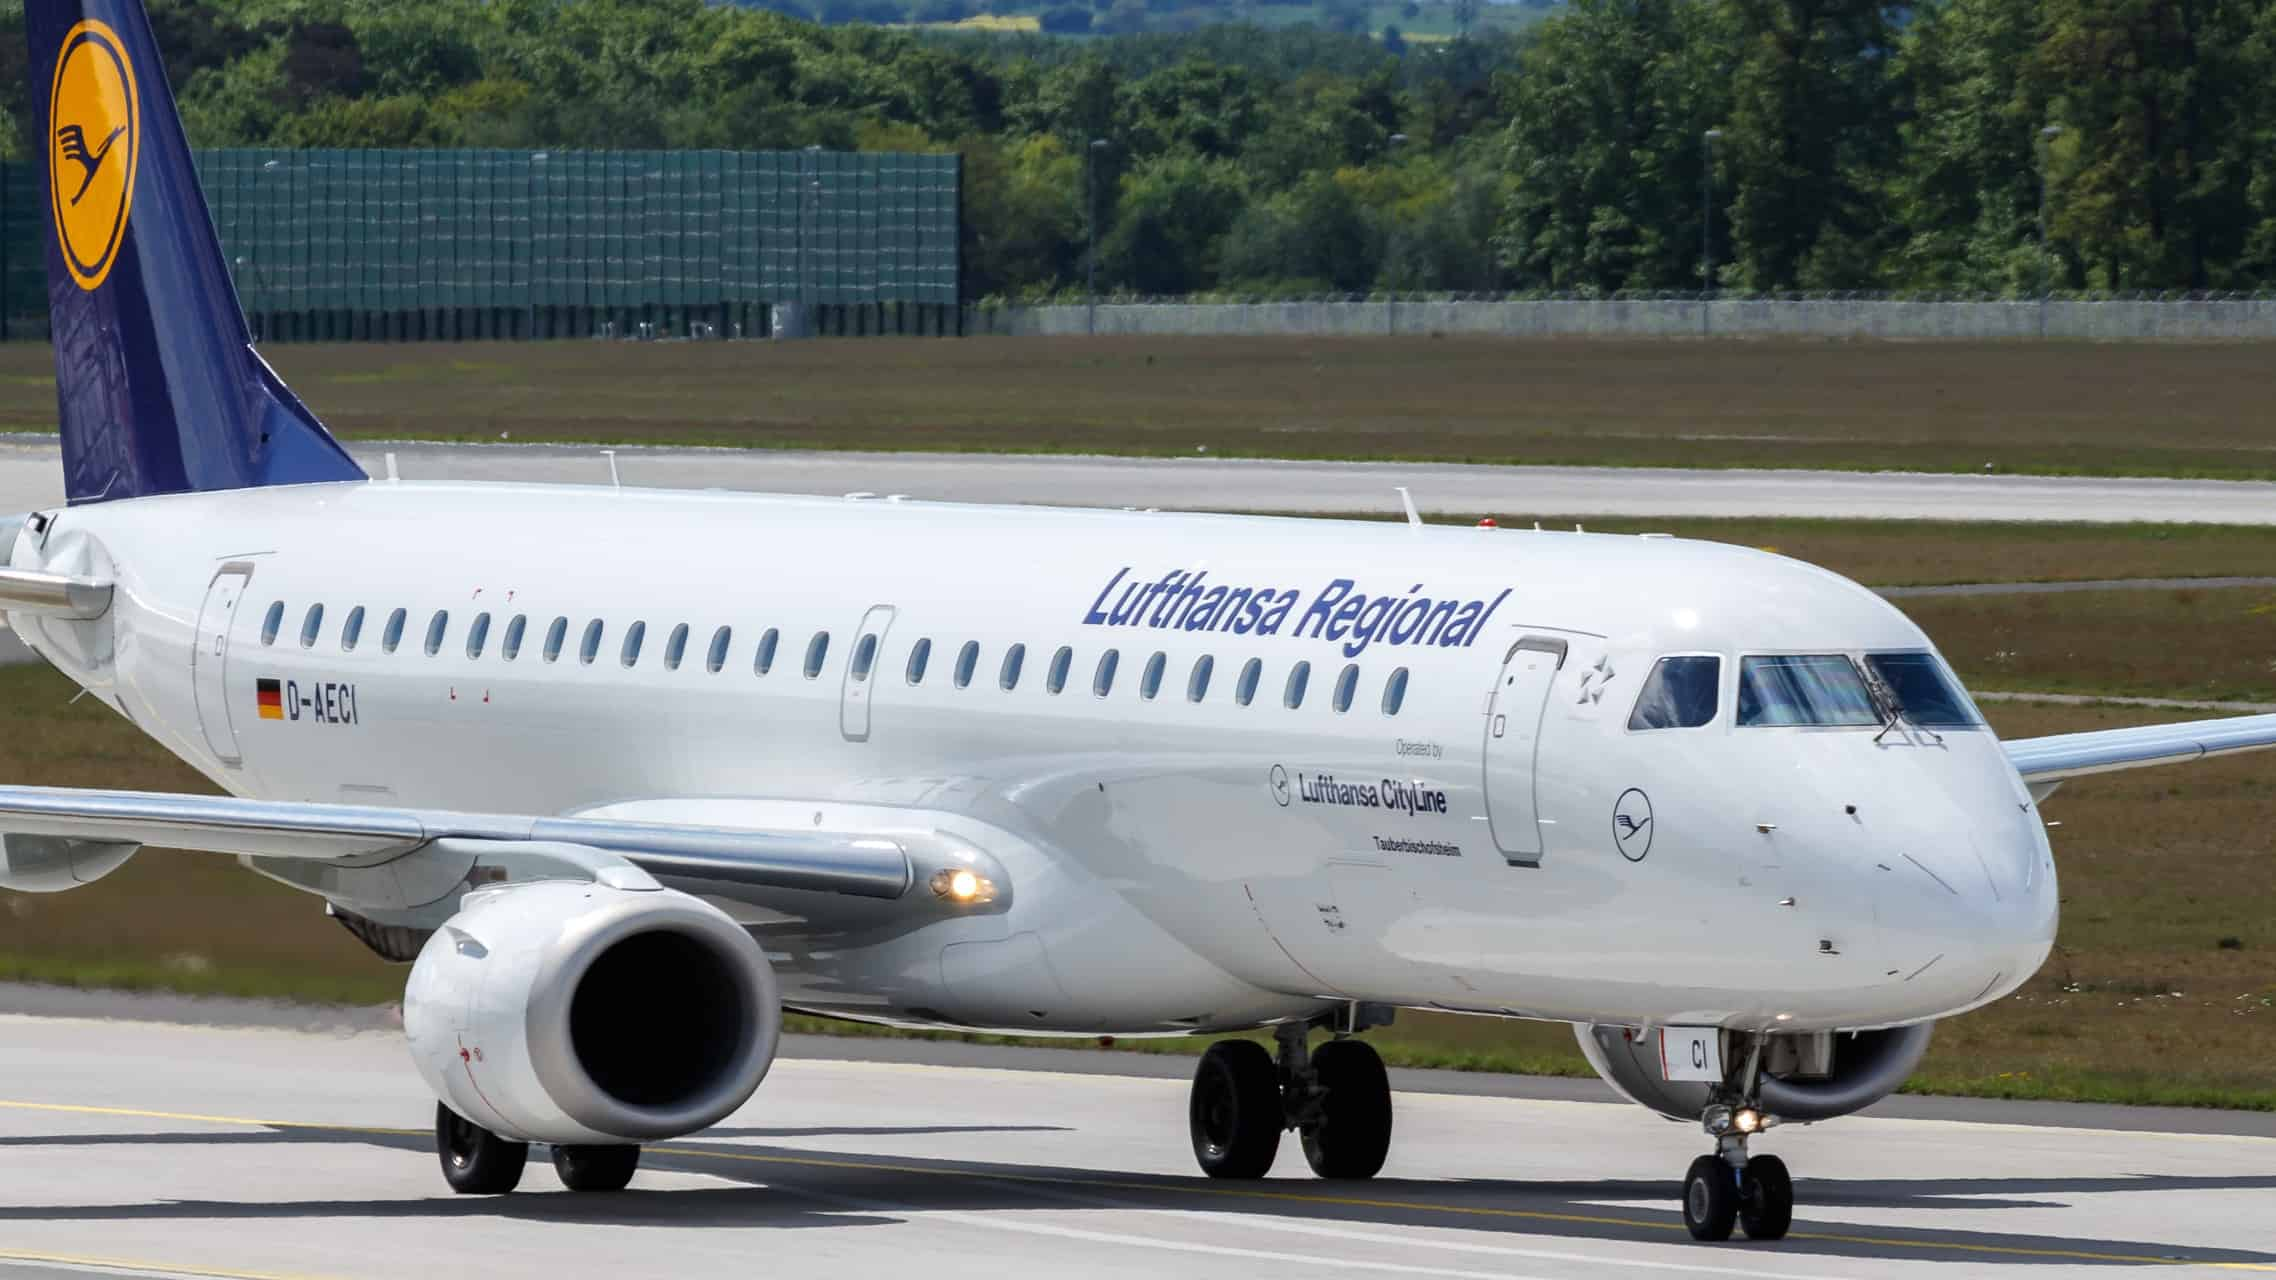 Embraer 190 - Price, Specs, Cost, Photos, Interior, Seating